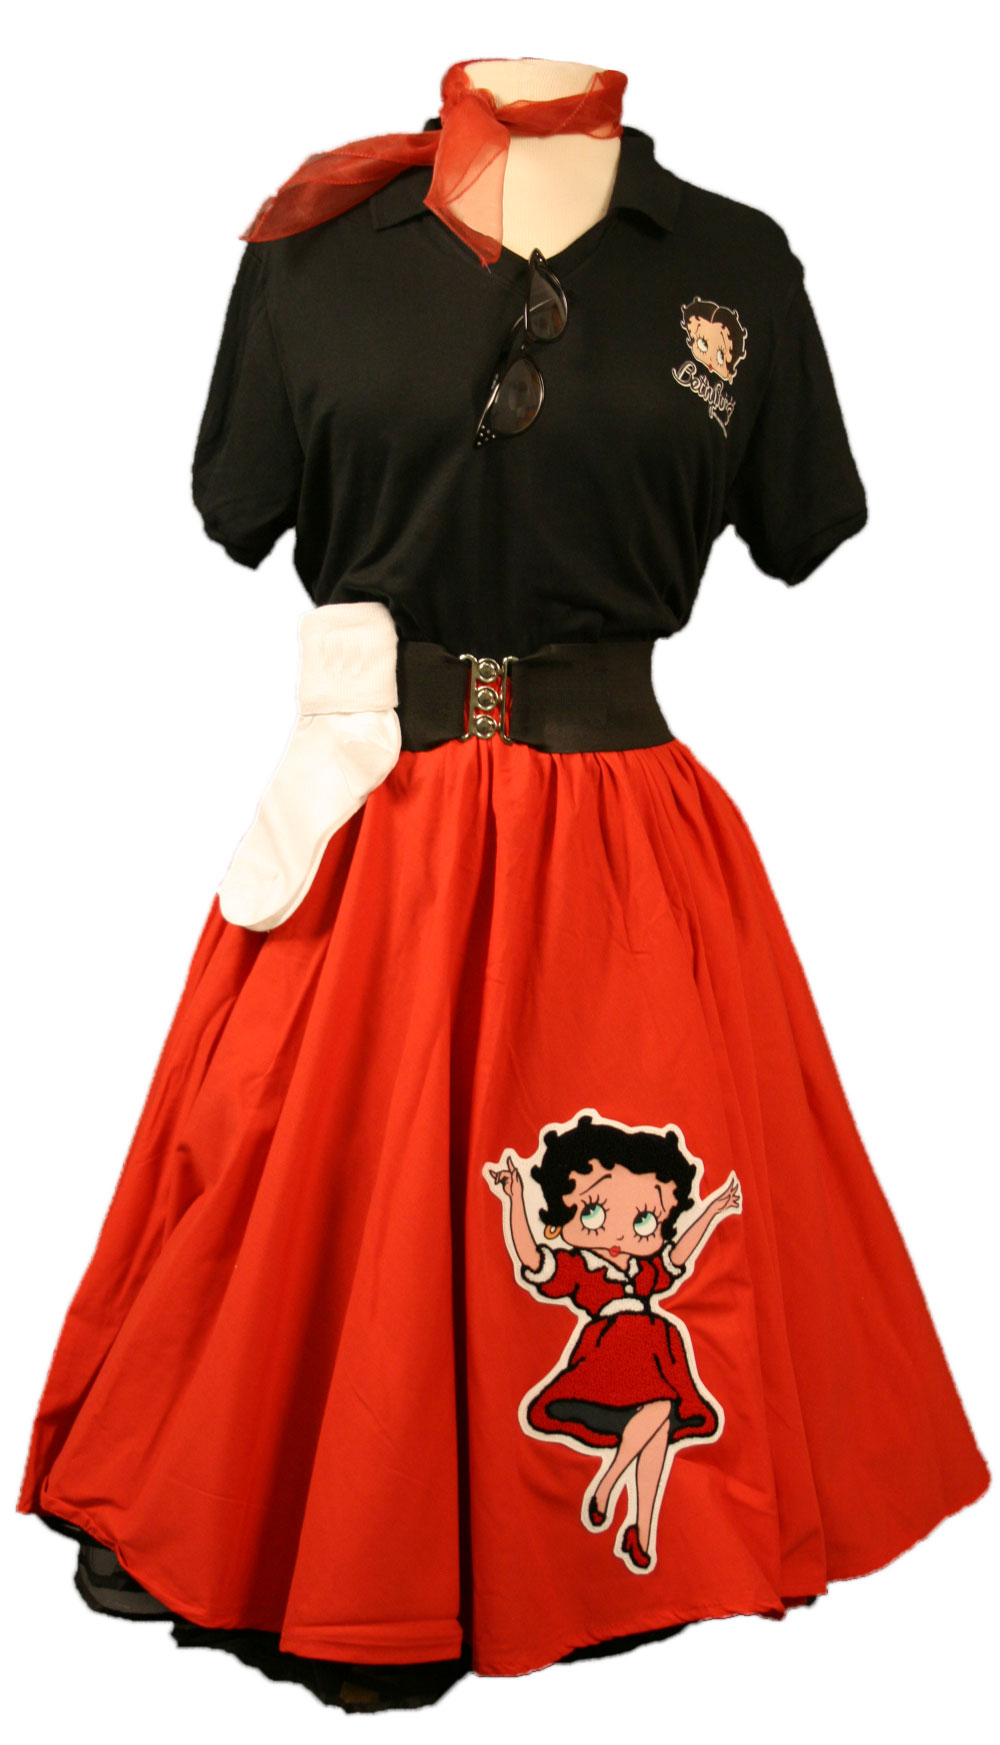 Adult Betty Boop Complete Outfit with Red Circle Skirt  w/ Betty Boop Red Blow Up Dress Chenille & Fitted Top